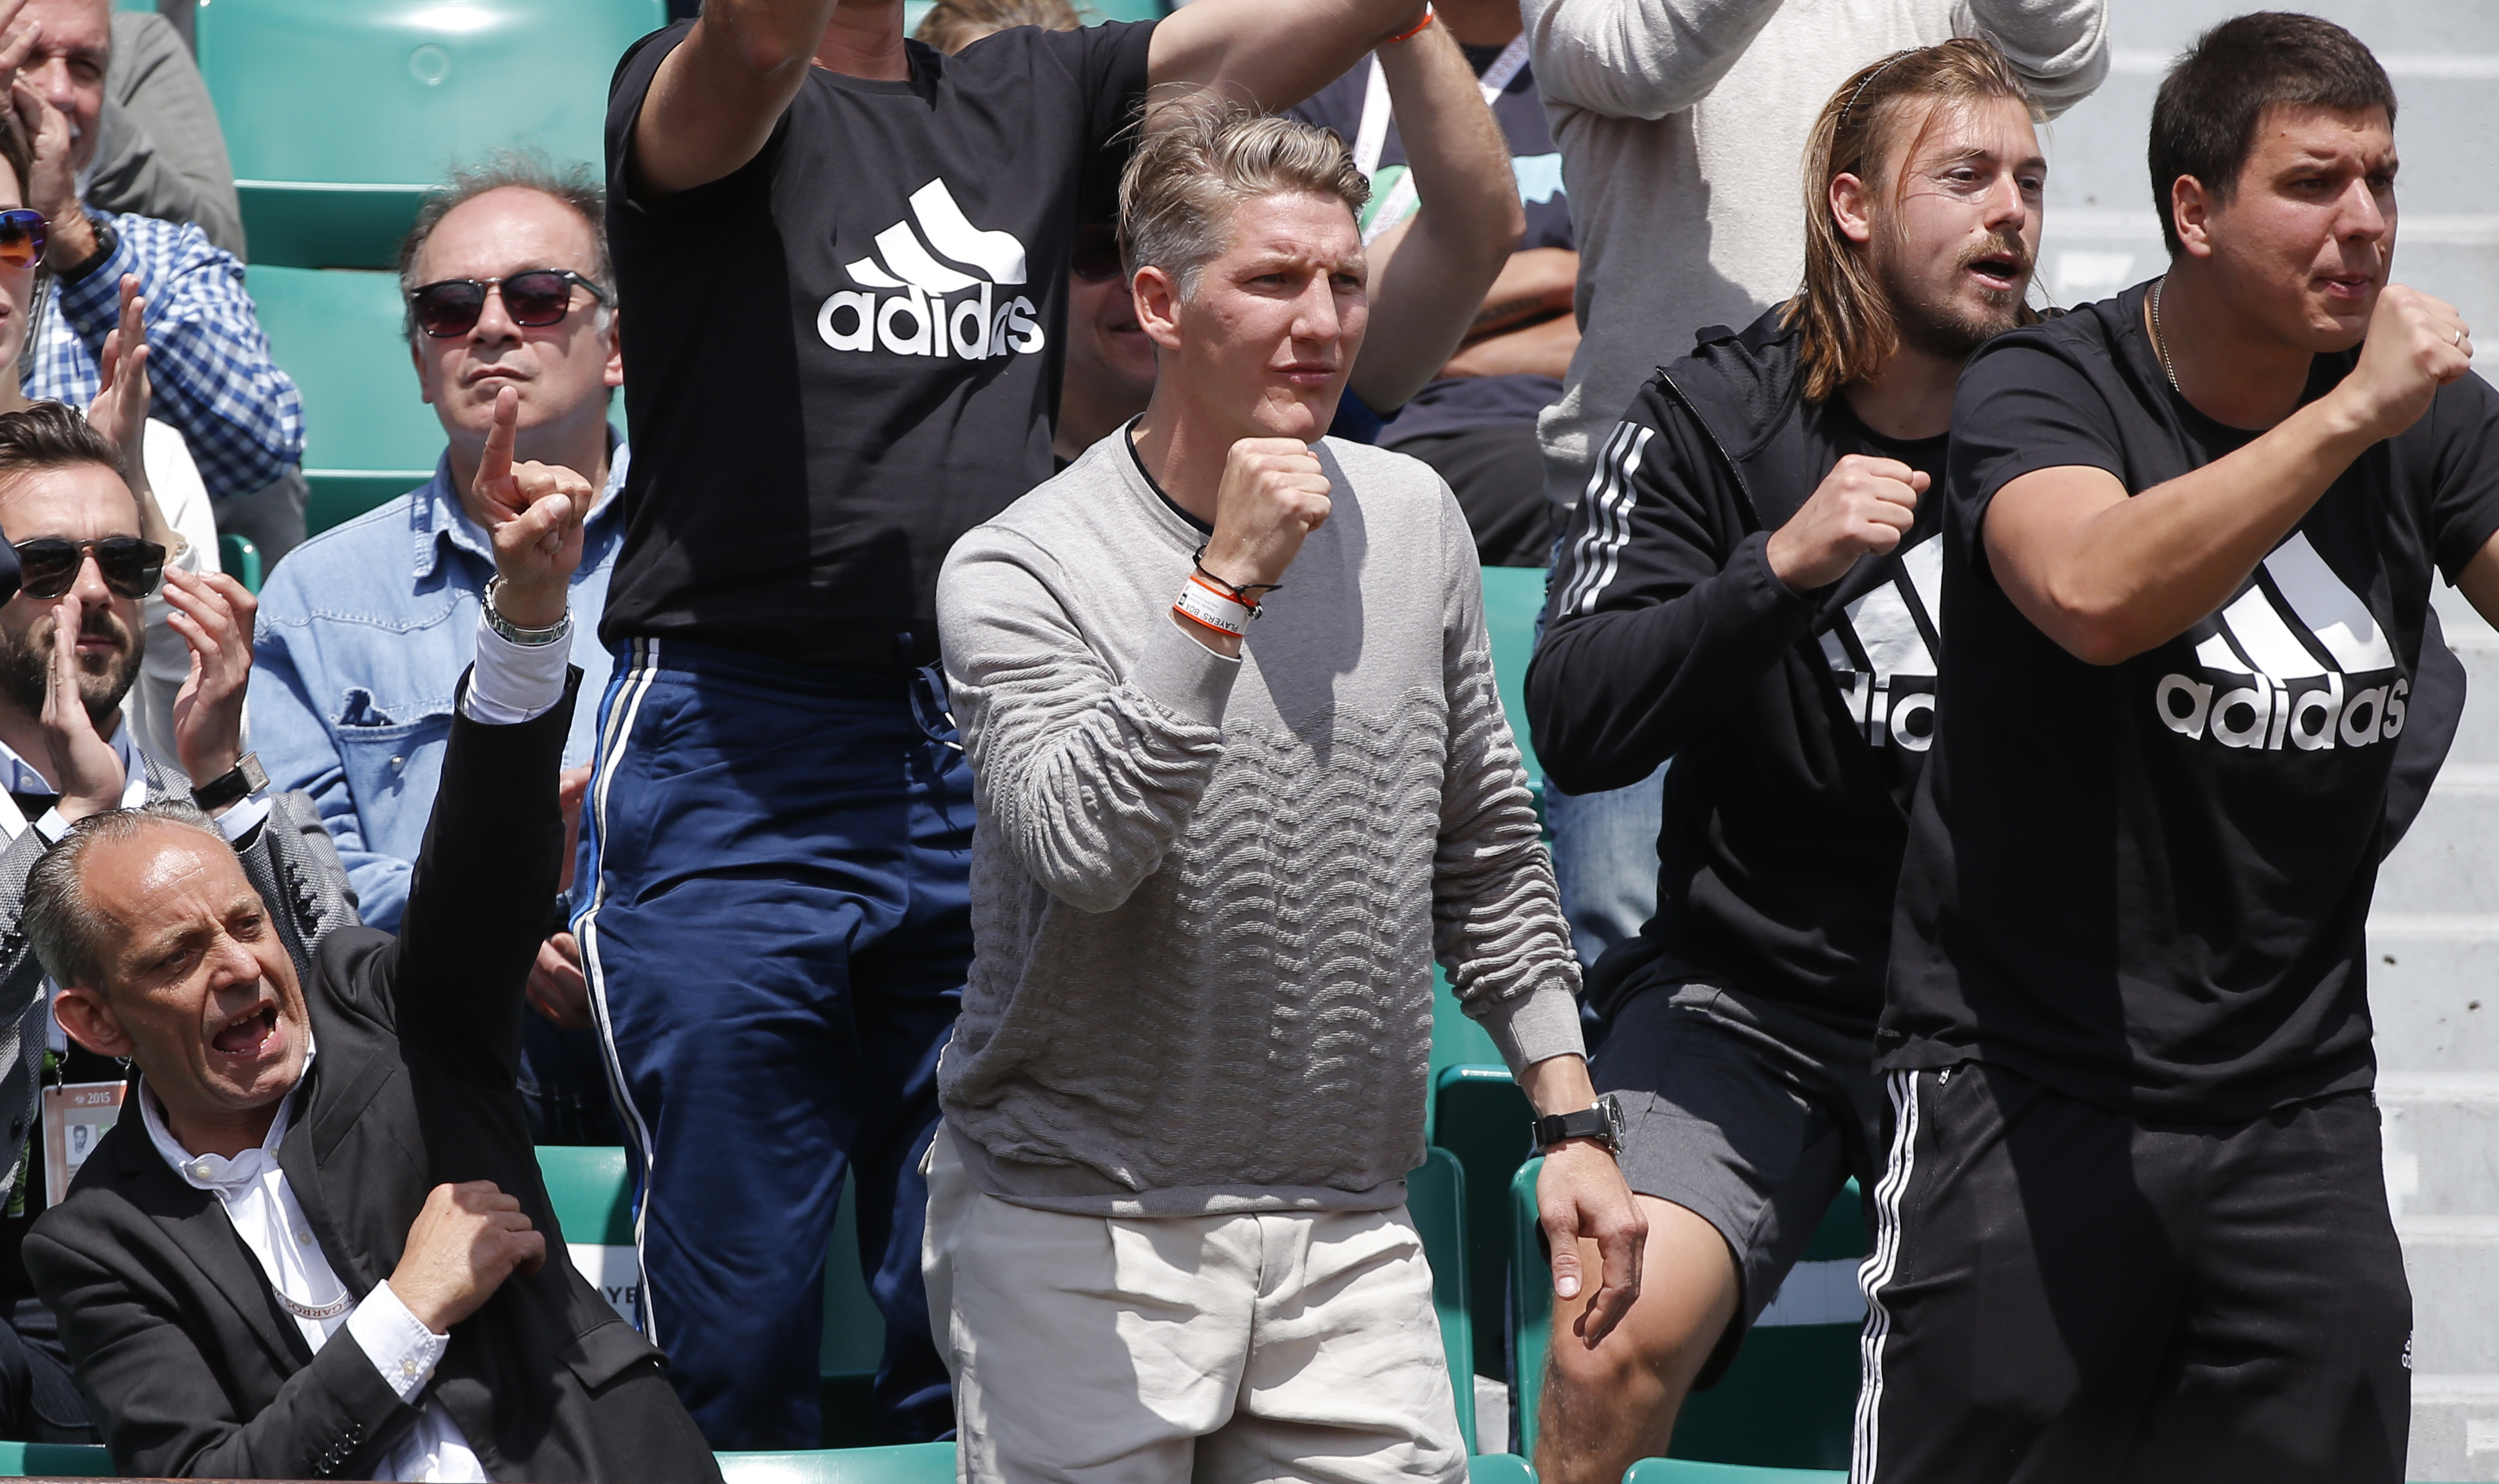 Bayern soccer player Germany's Bastian Schweinsteiger, standing at center,  clenches his fist as Serbia's Ana Ivanovic plays Ukraine's Elina Svitolina during their quarterfinal match of the French Open tennis tournament at the Roland Garros stadium, Tuesd